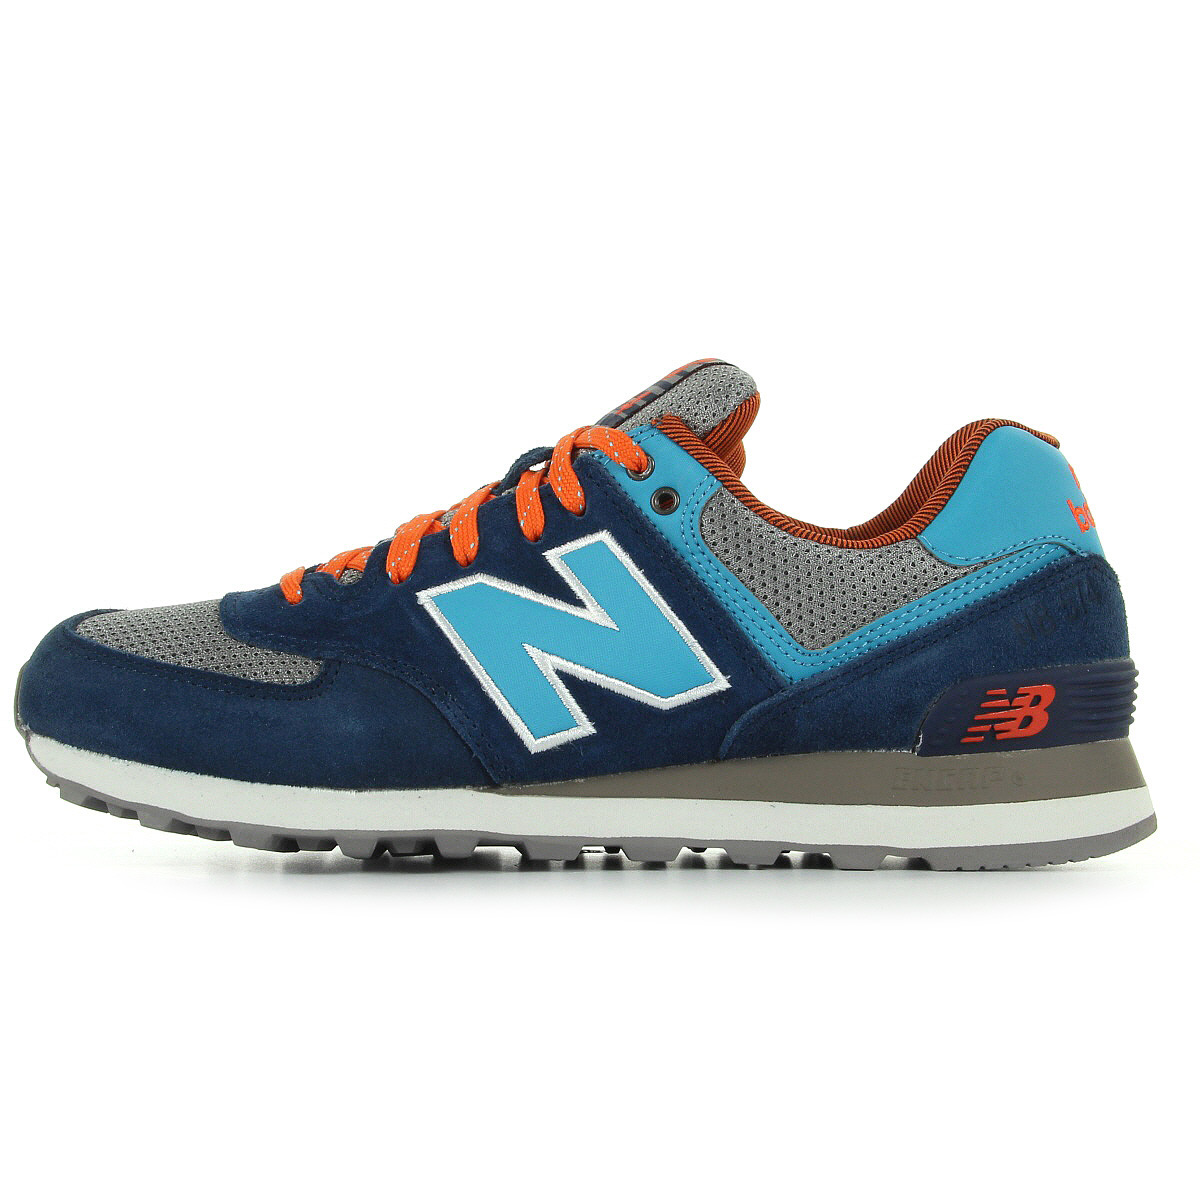 chaussures baskets new balance homme ml574 taille bleu. Black Bedroom Furniture Sets. Home Design Ideas